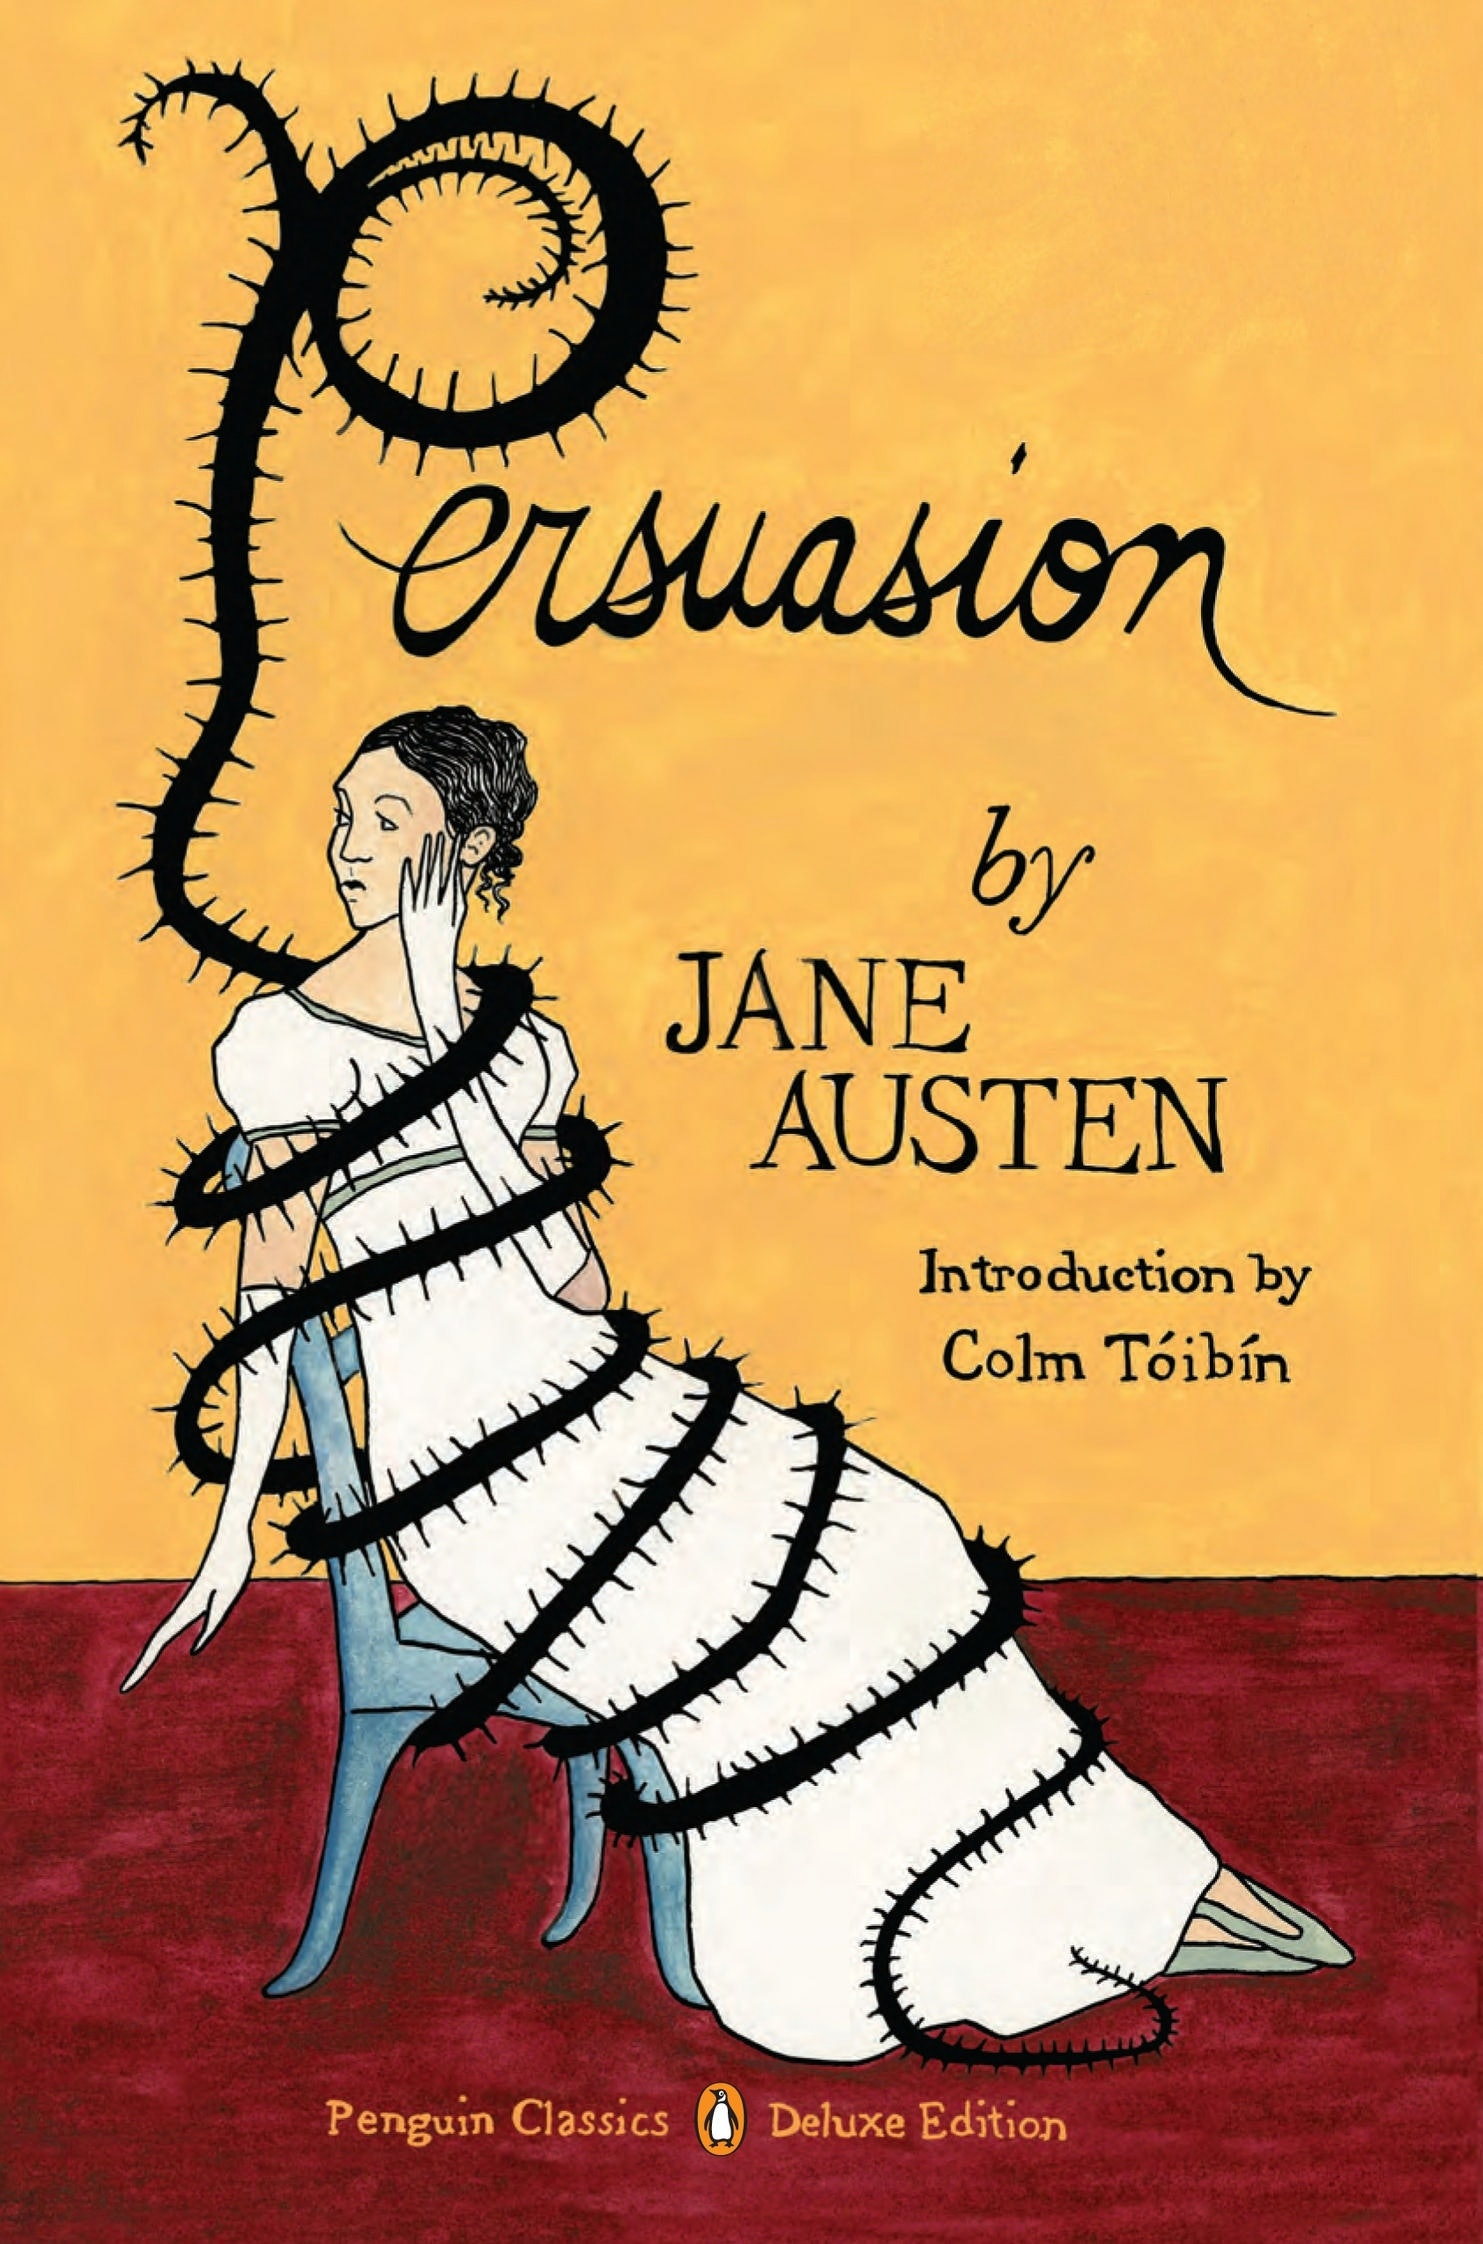 jane austens persuasion essay In persuasion, jane austen presents her dislike of the english gentry by pointing out the flaws of her characters, which are representative of the class mary musgrove, daughter of sir walter, sister of anne, and wife of charles personifies these flaws, and is thus the object of austen s contempt.